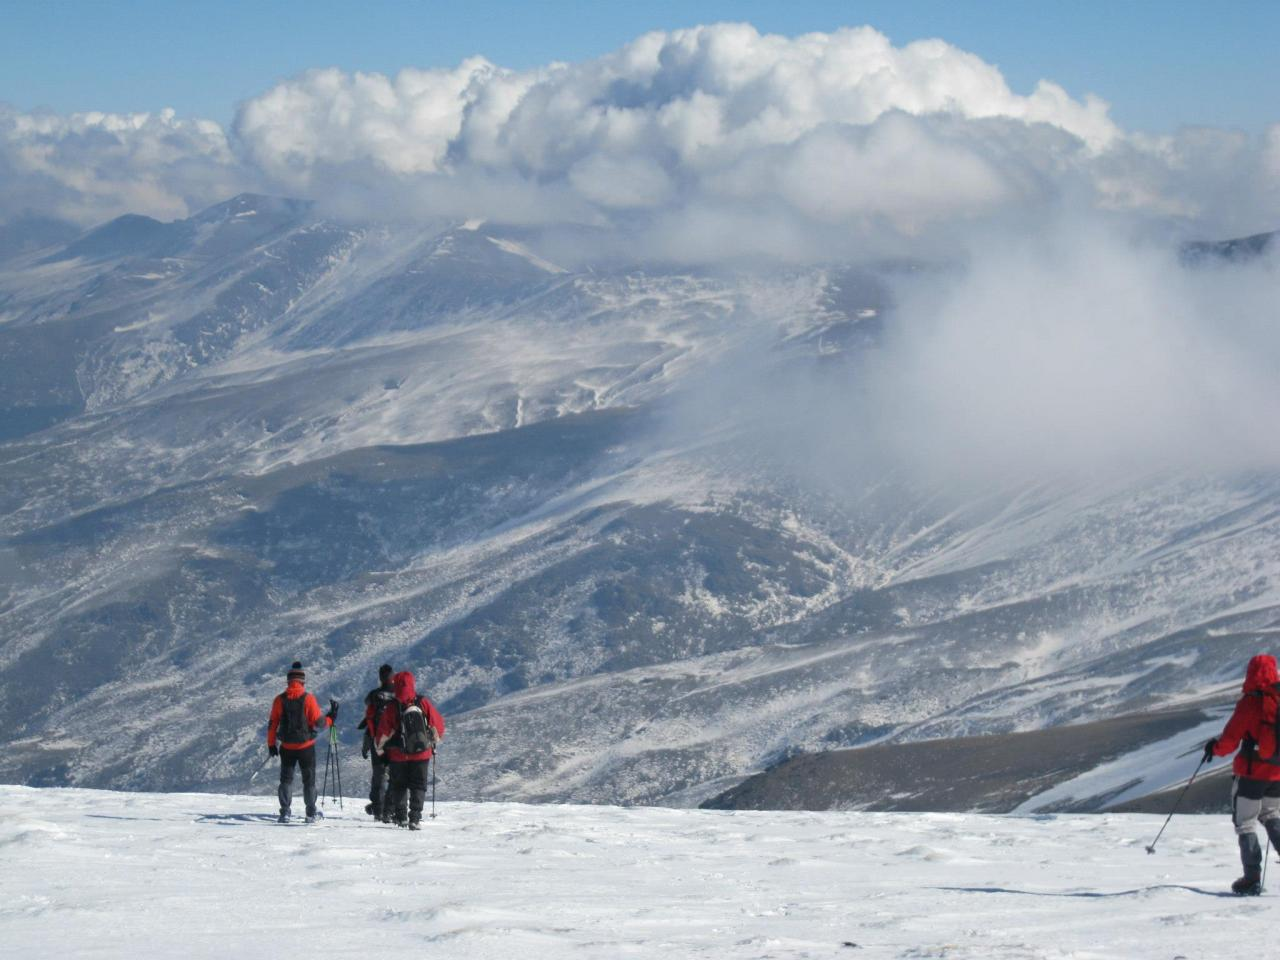 A picture from Sierra Nevada by soriano dario